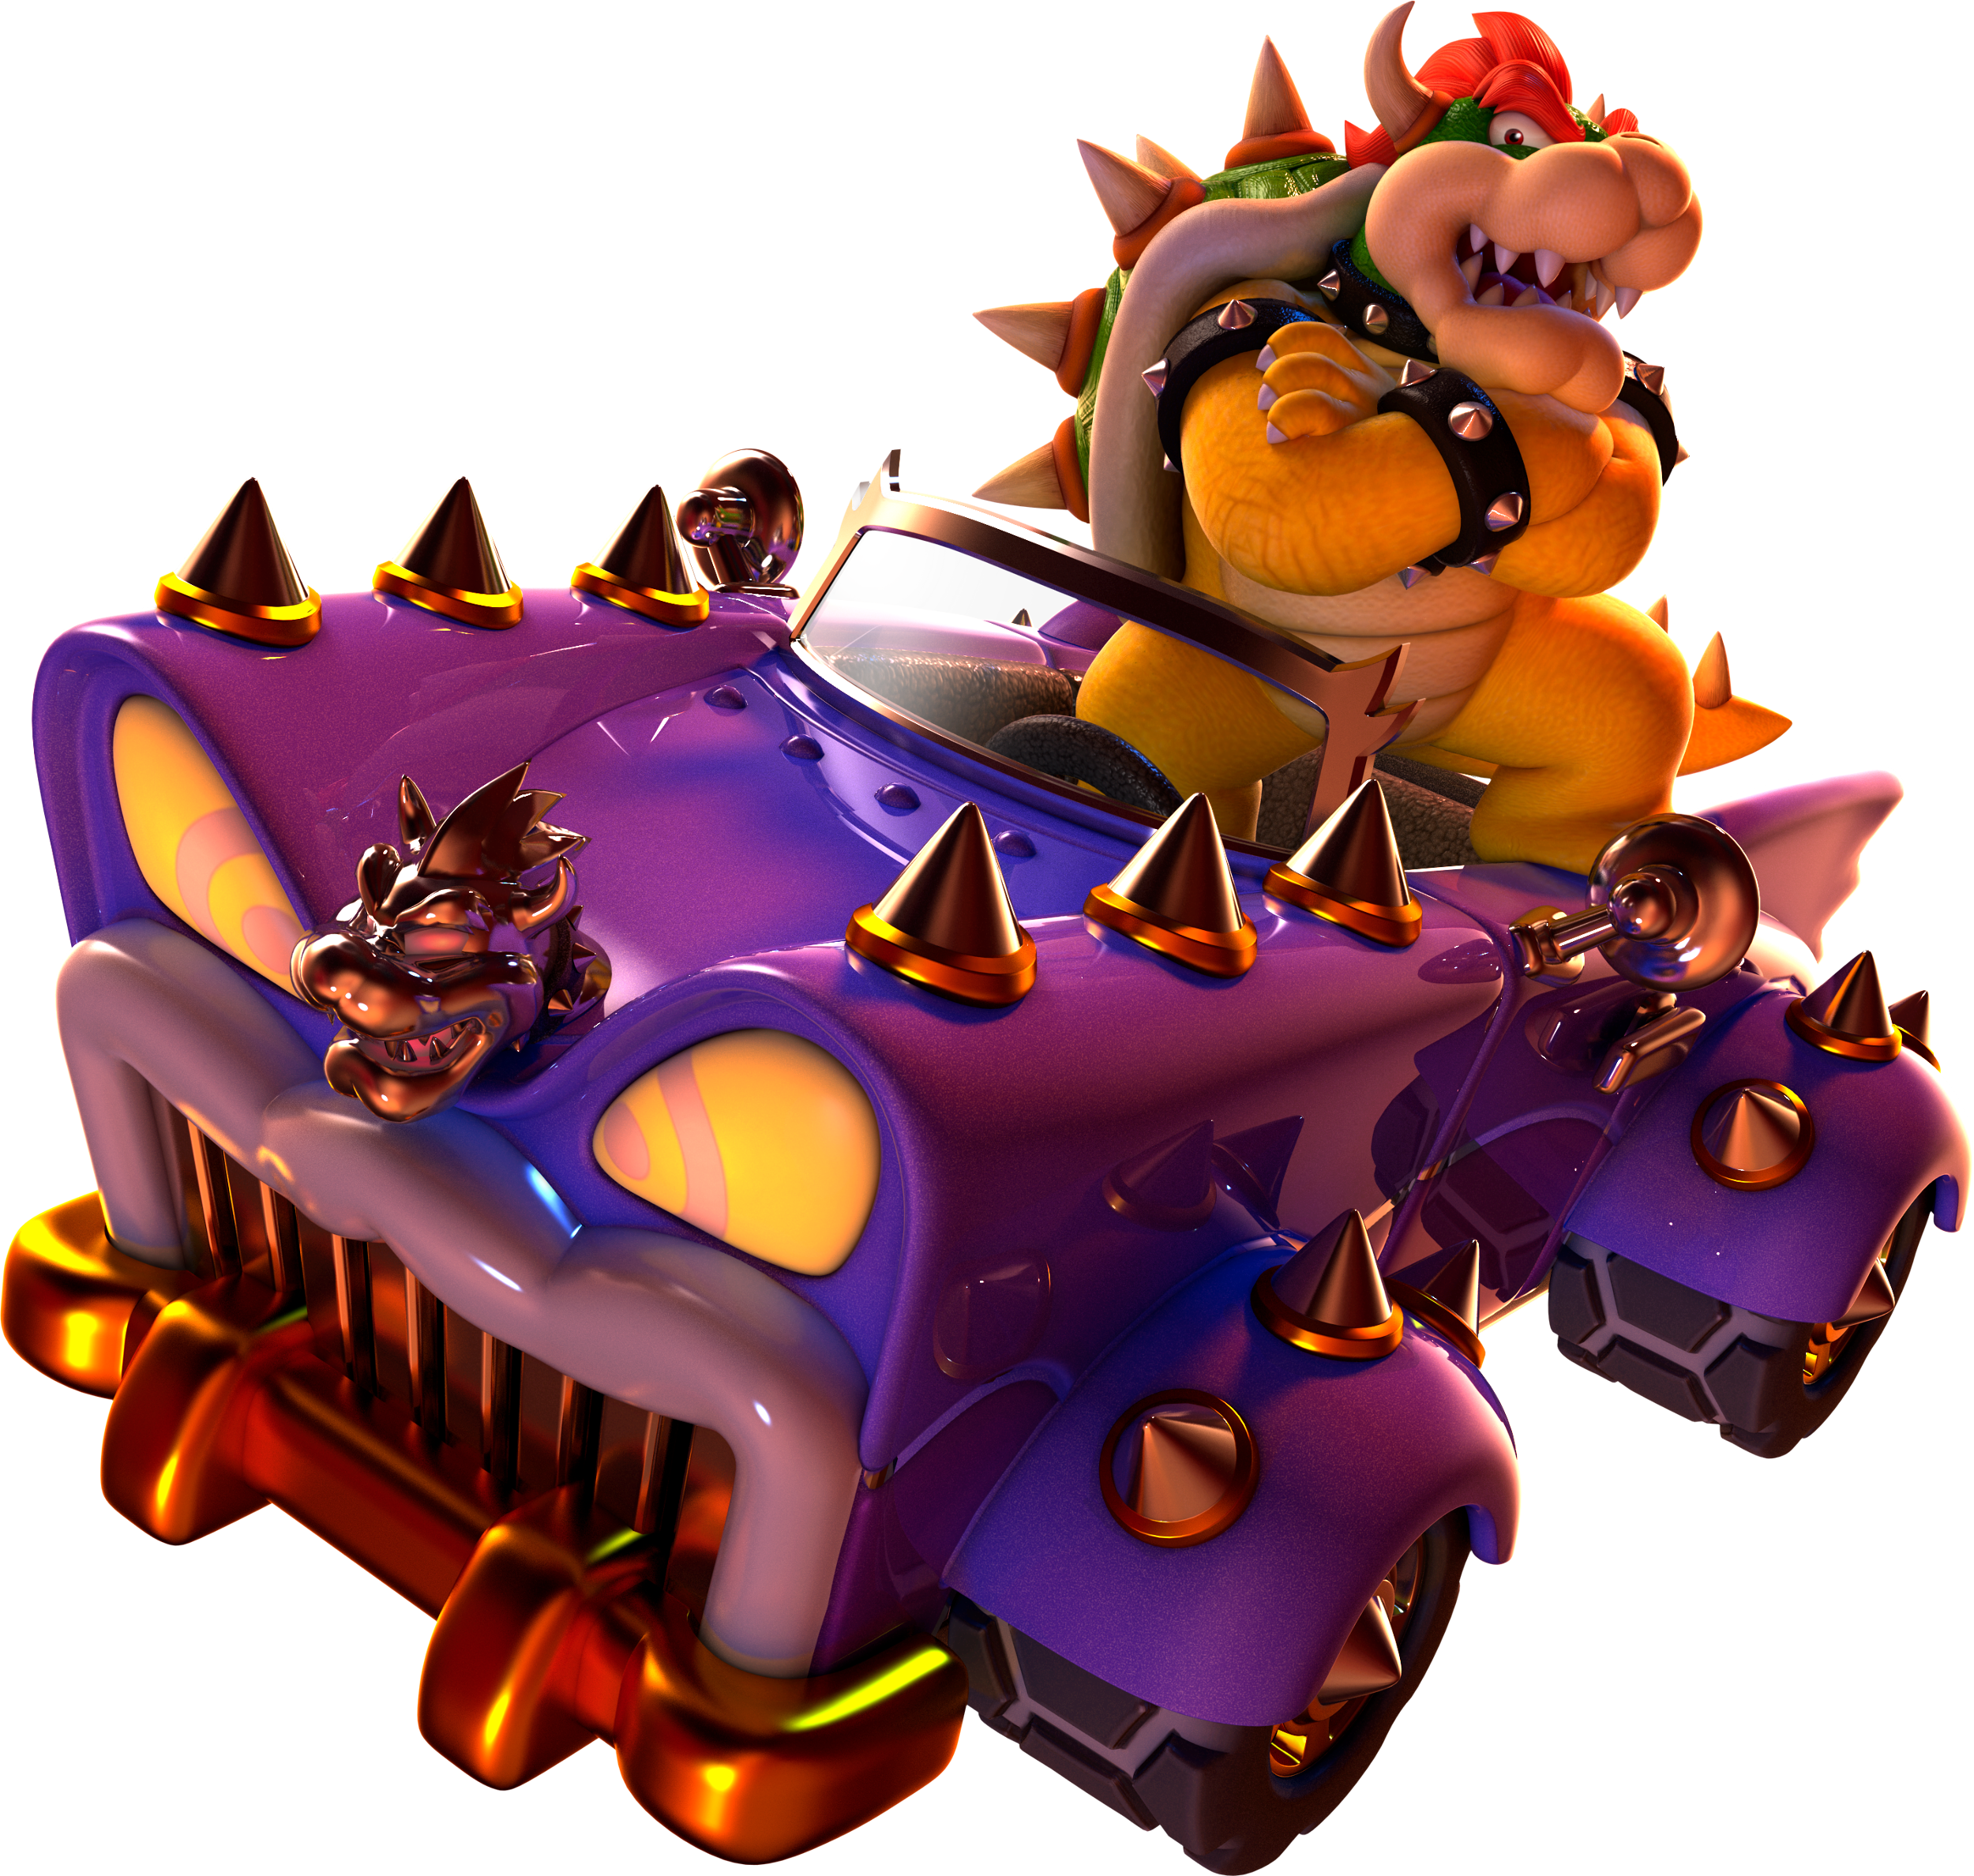 Who Else Wants To See This Vehicle In MK8 DLC? : Wiiu